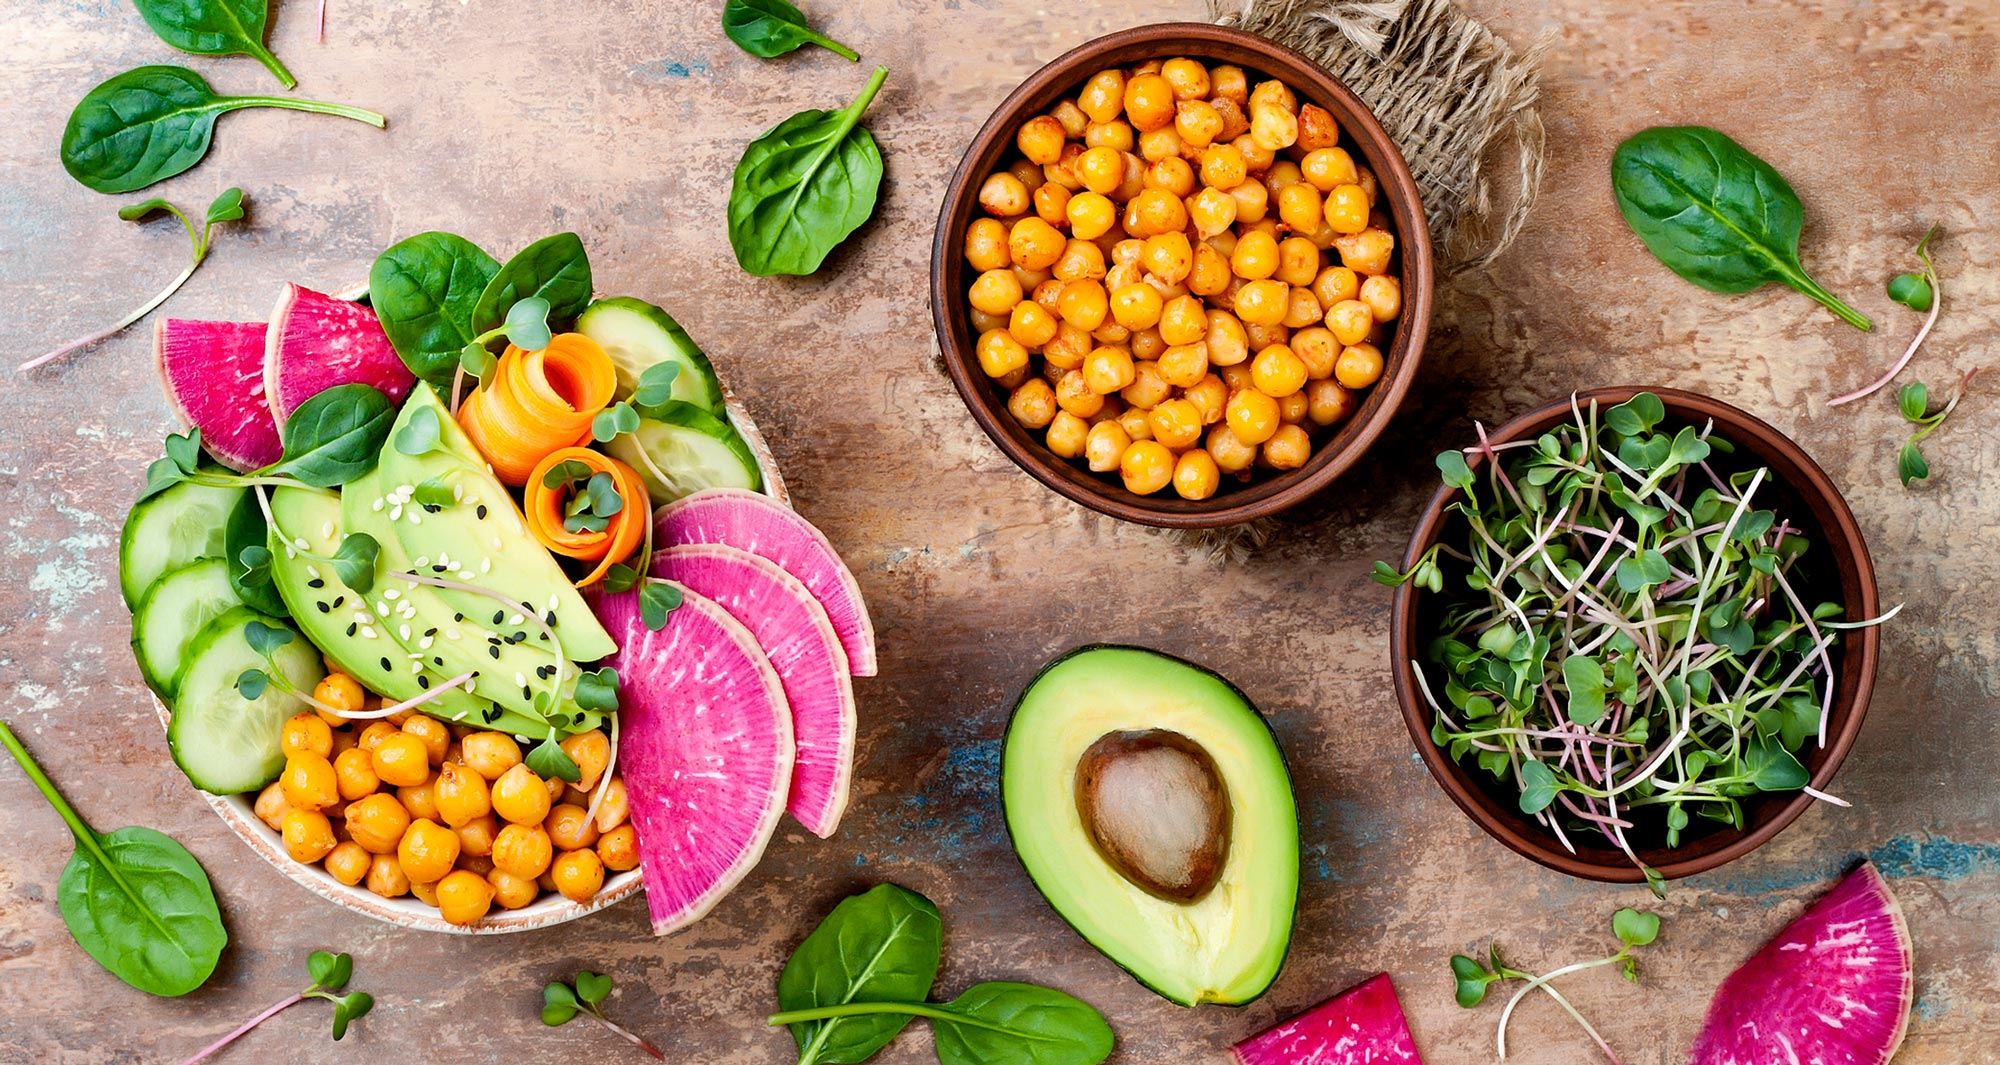 Vegan Statistics: Why The Global Rise in Plant-Based Eating